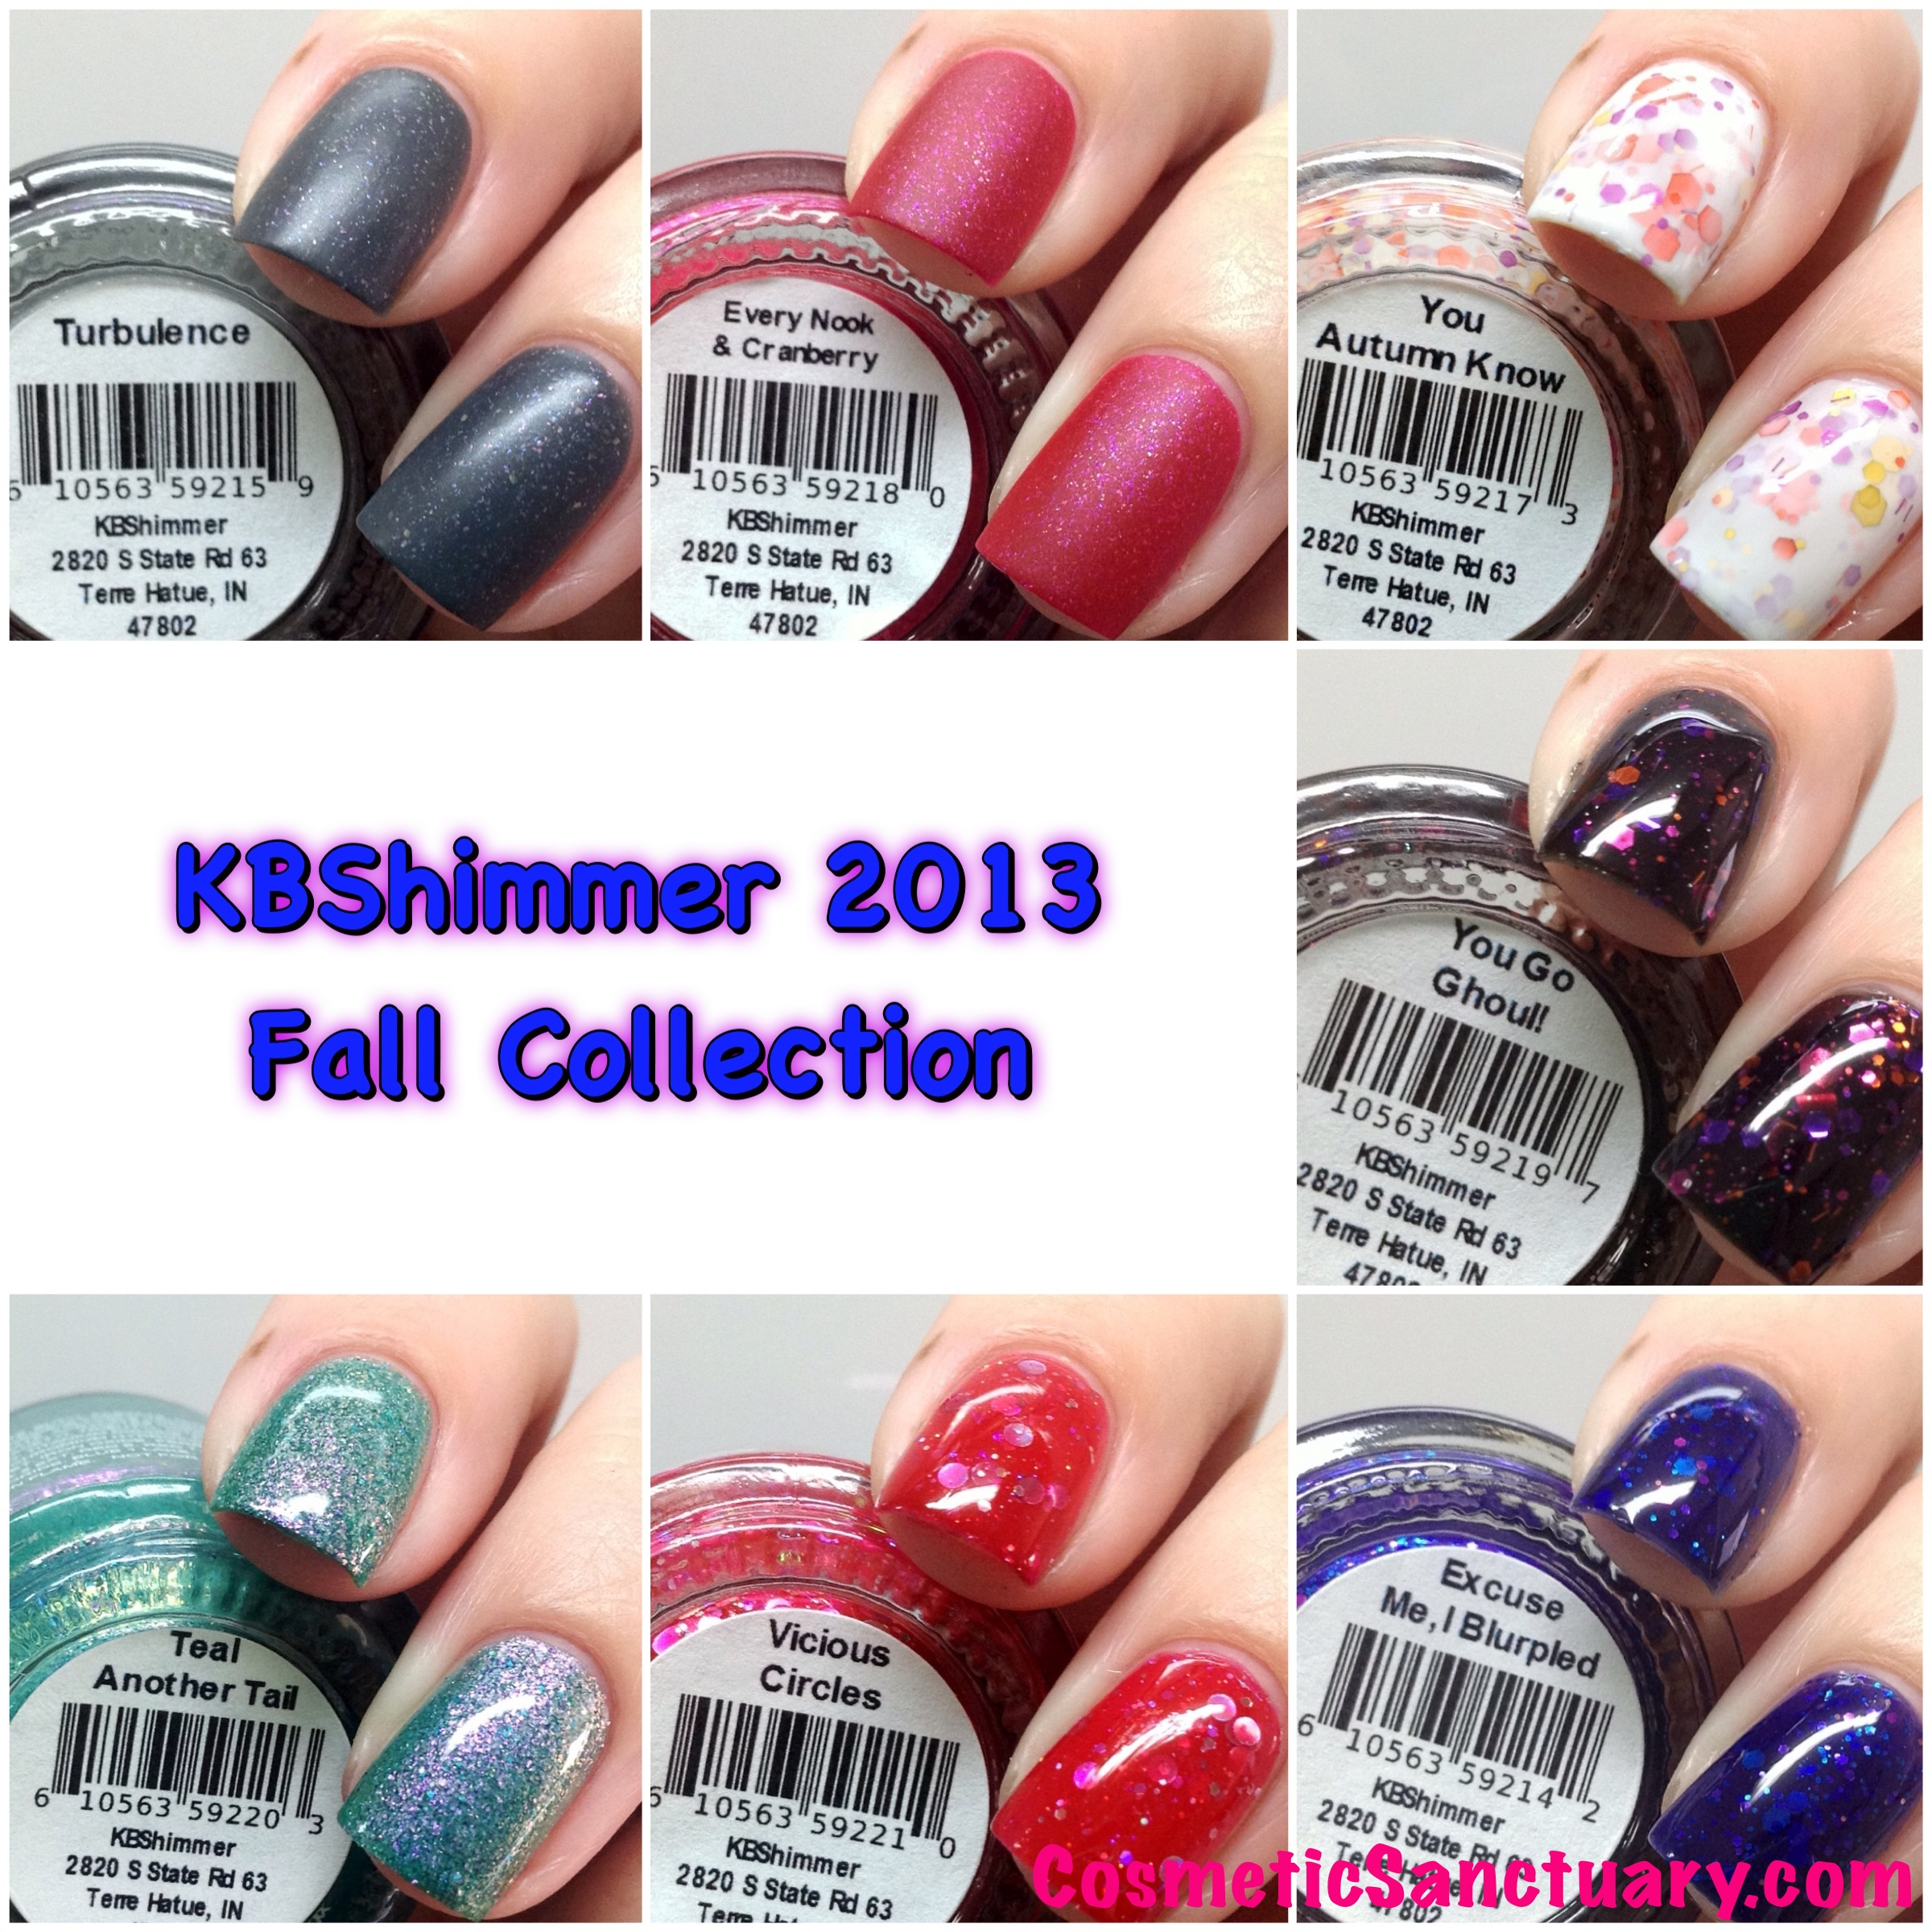 KBShimmer 2013 Fall Collection Swatches and Review